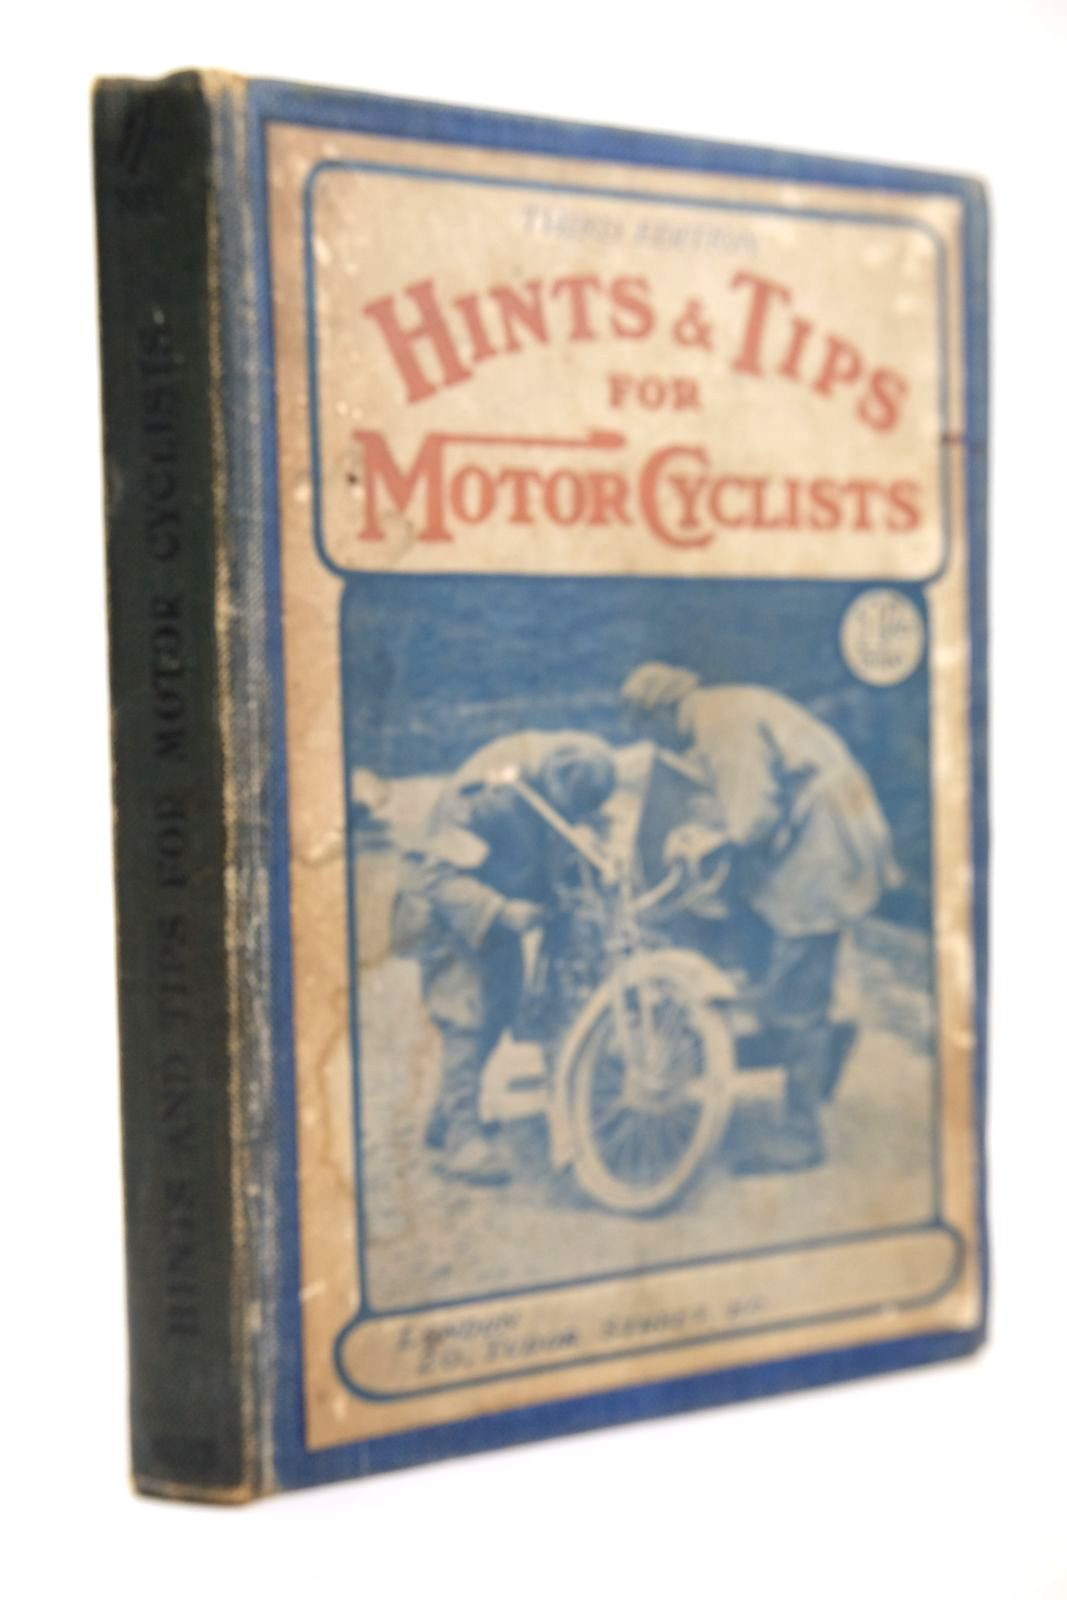 Photo of HINTS & TIPS FOR MOTOR CYCLISTS published by Iliffe & Sons Limited (STOCK CODE: 2133361)  for sale by Stella & Rose's Books